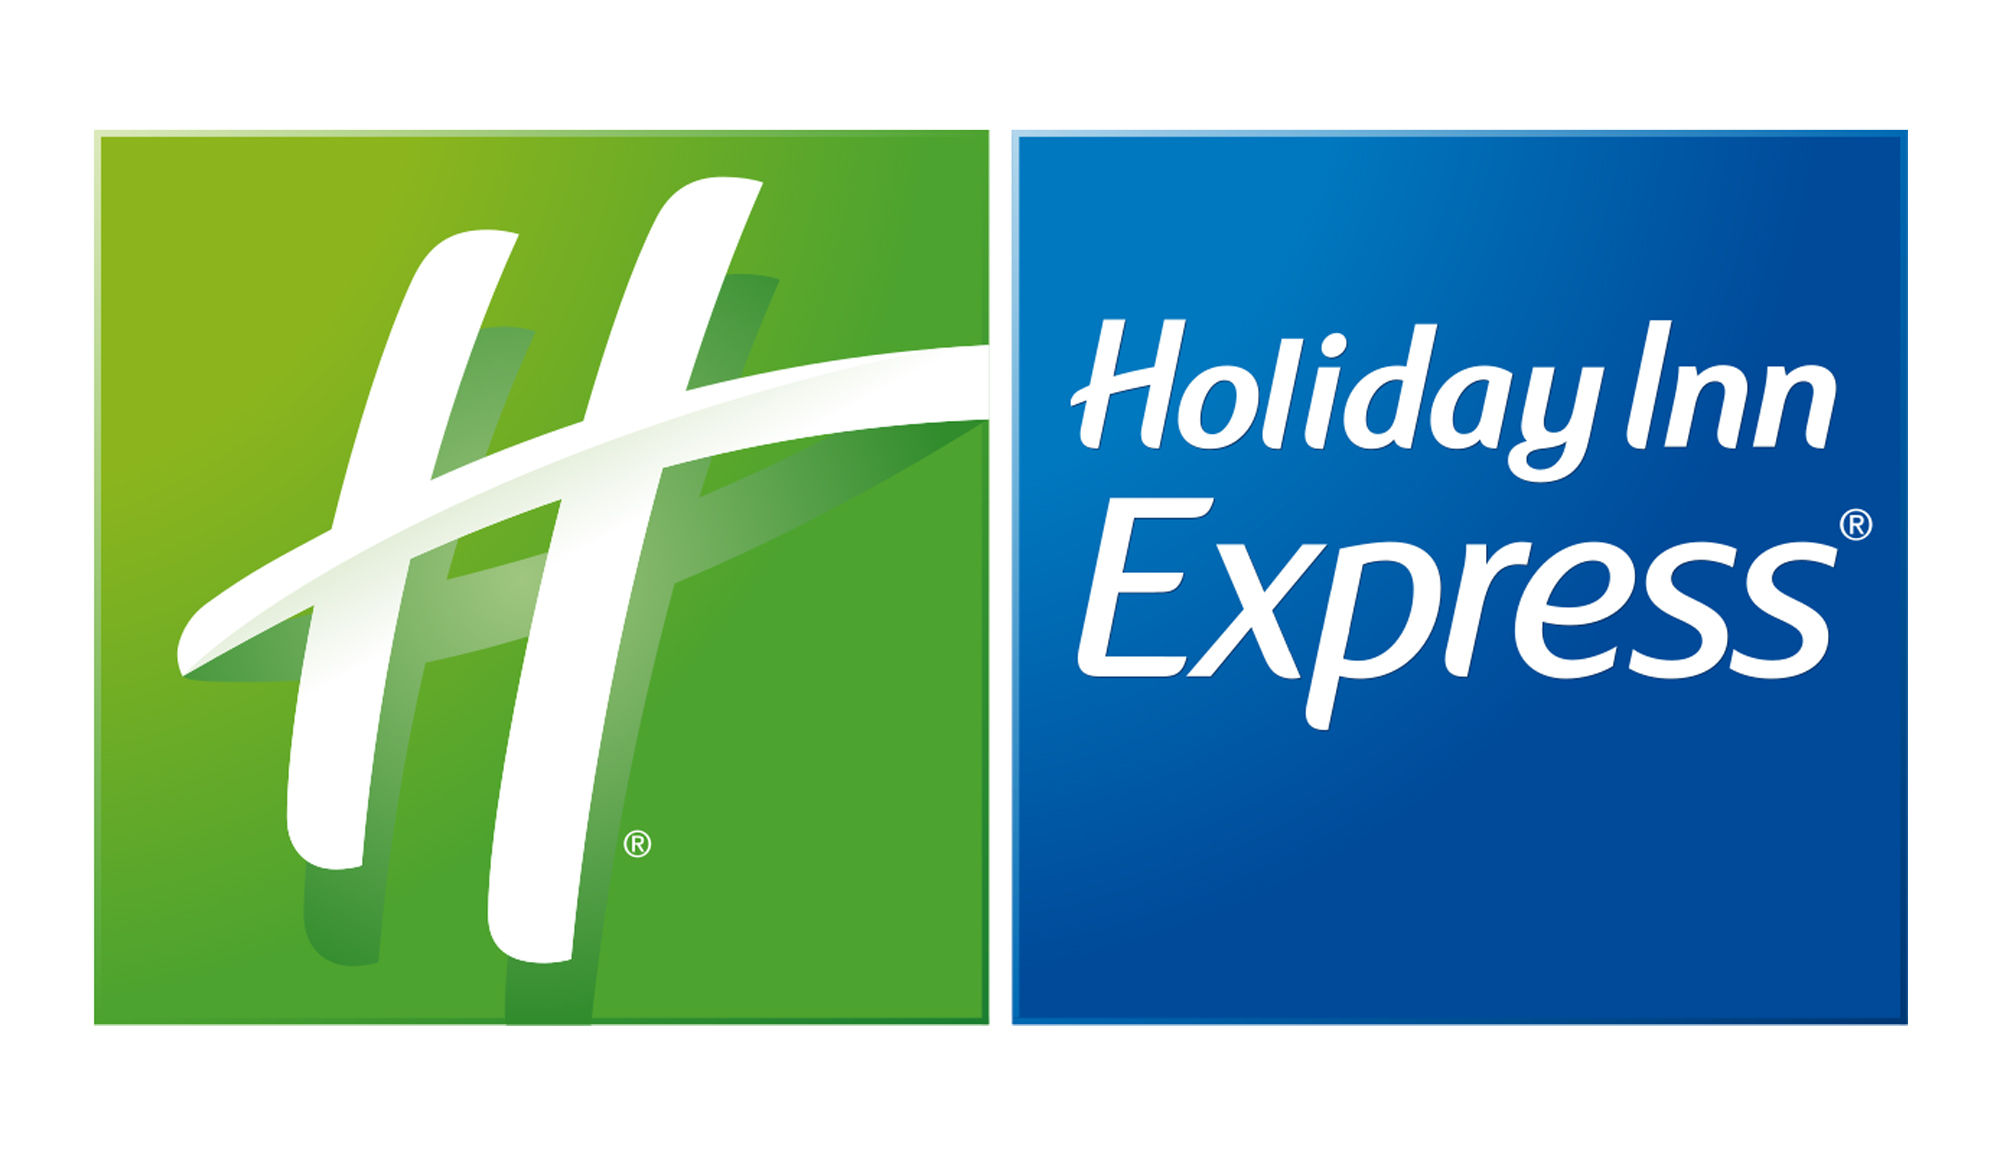 Holiday Inn Express hotel logo